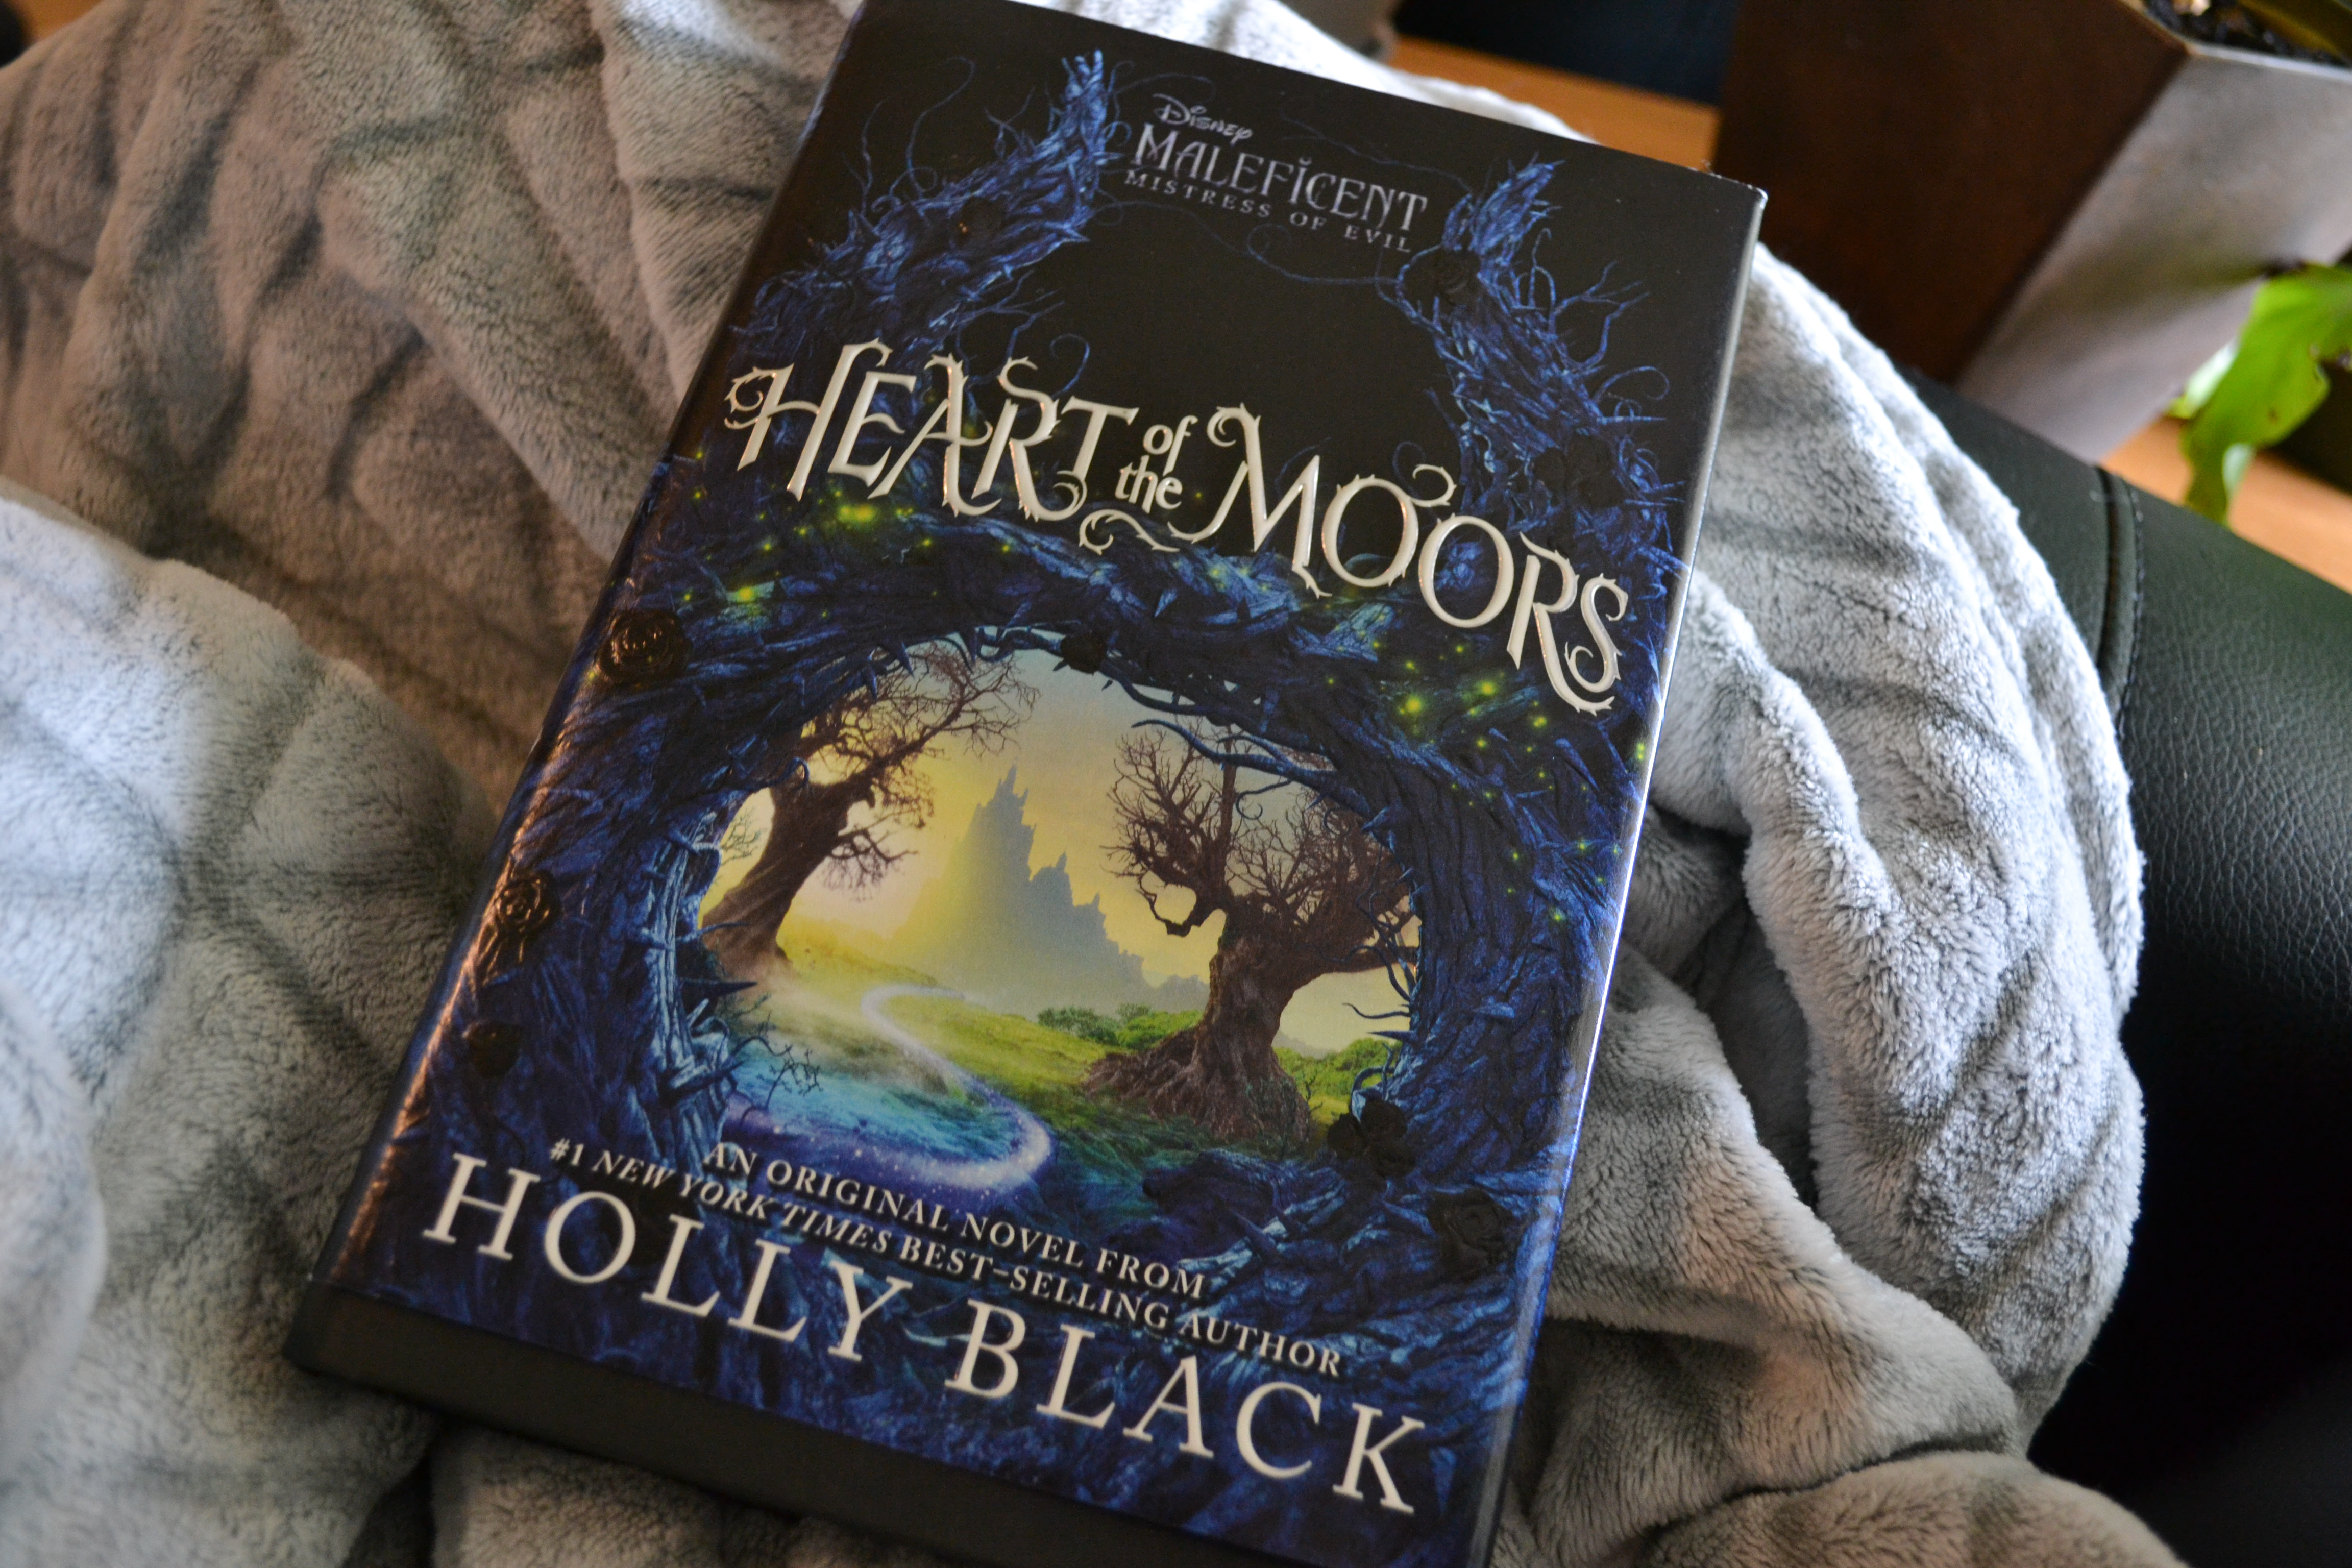 Holly Black S Heart Of The Moors Giveaway